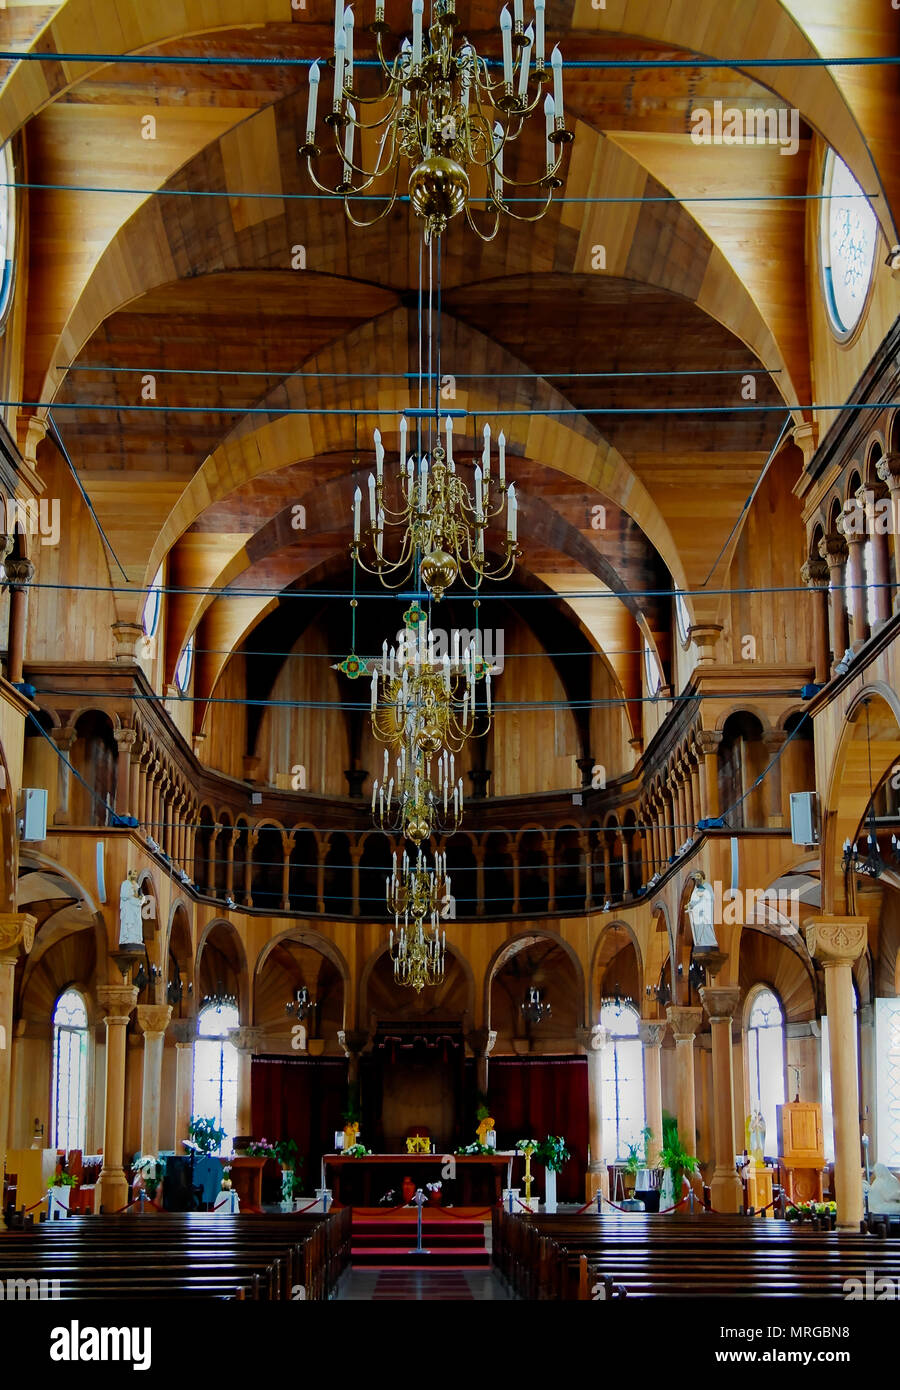 Interior view to Saint Peter and Paul Cathedral 08-05-2013 Paramaribo, Suriname - Stock Image